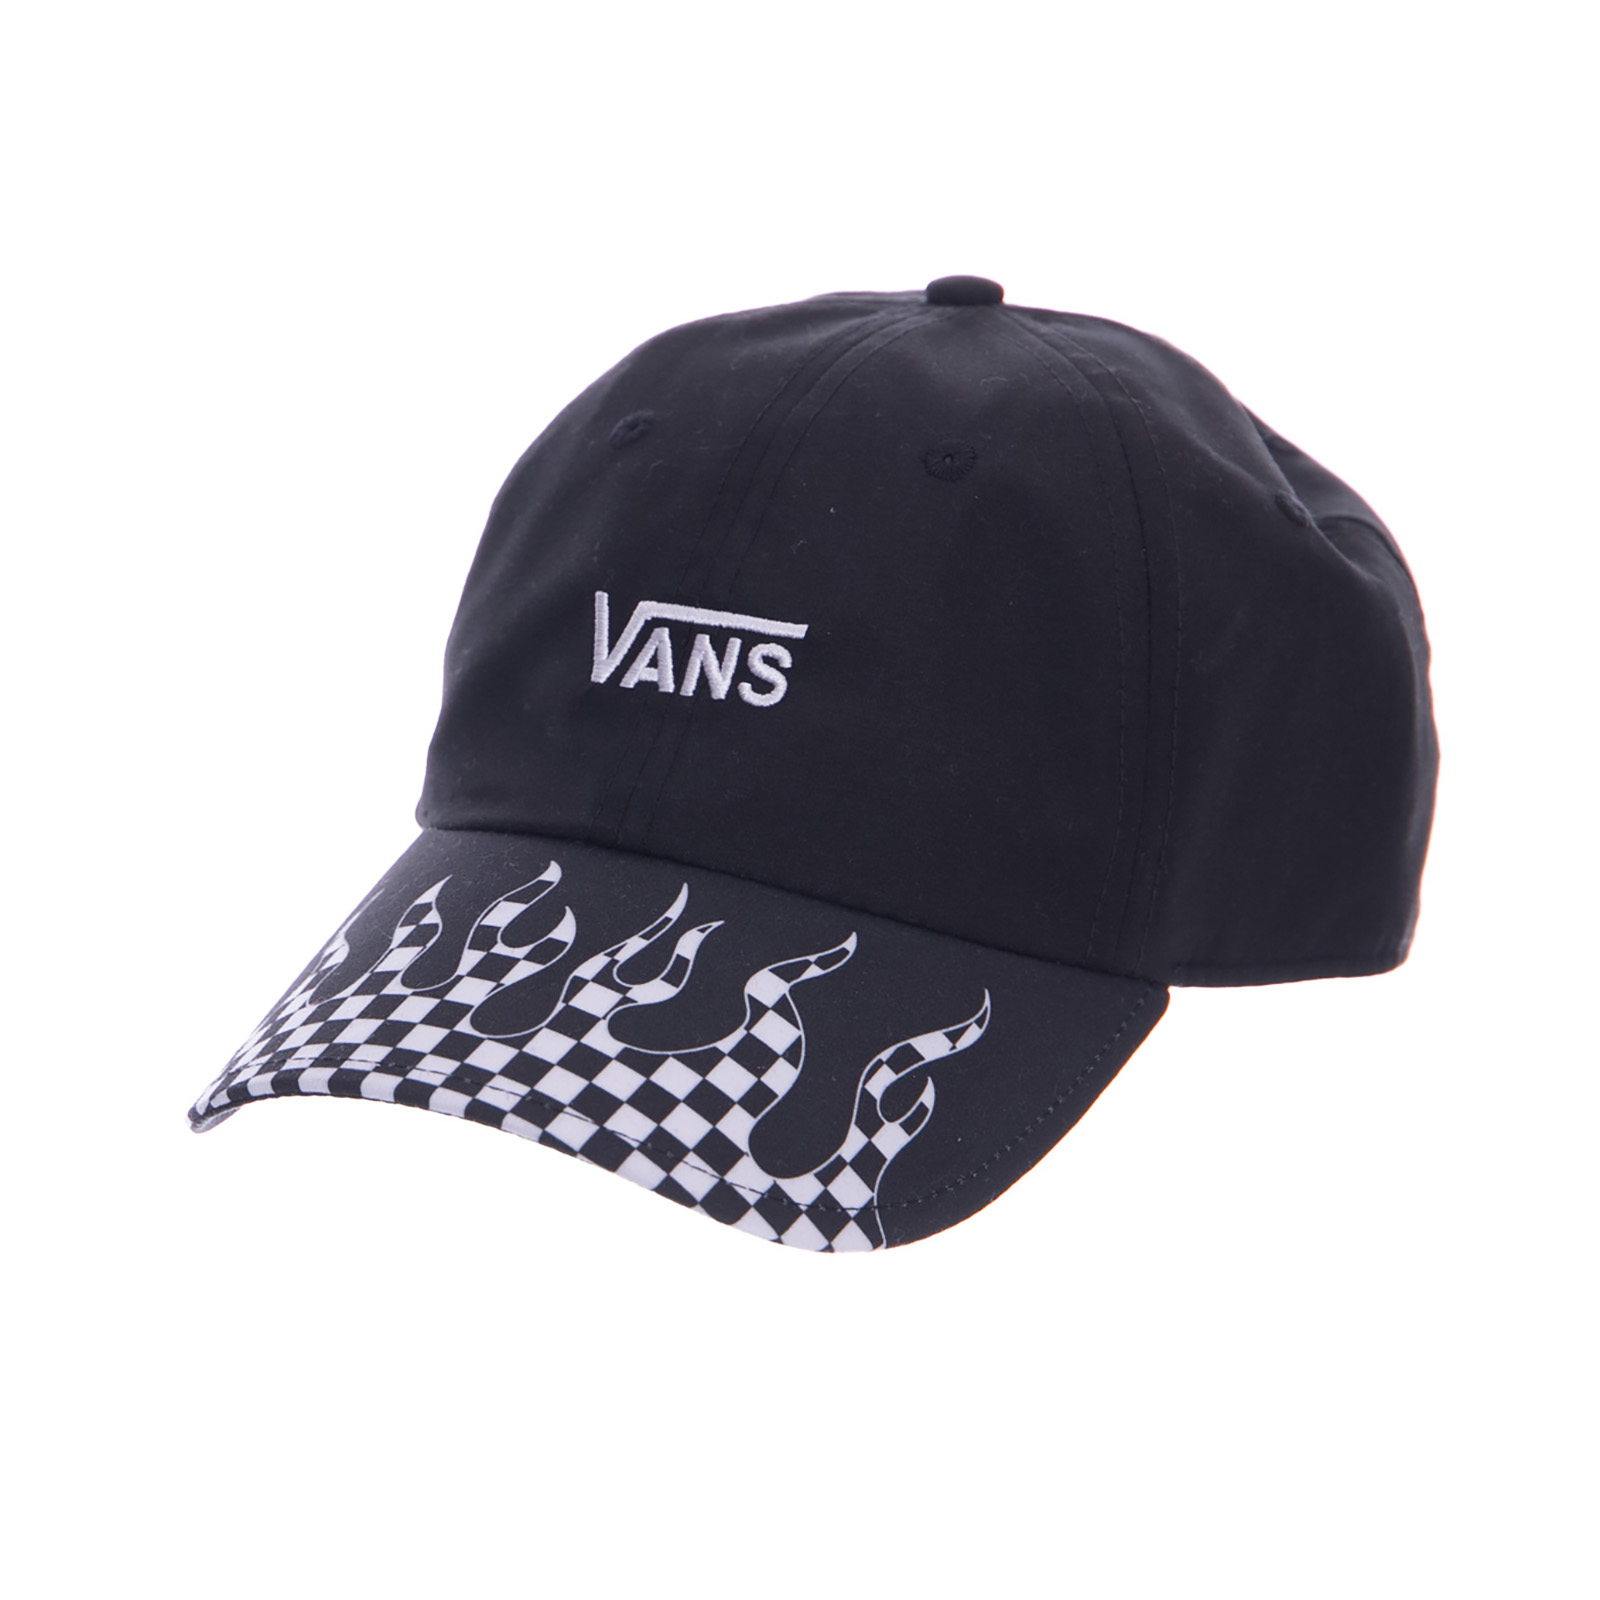 029acbee04e Vans Cappelli Court Side Printed Hat Checker Flame Black Black